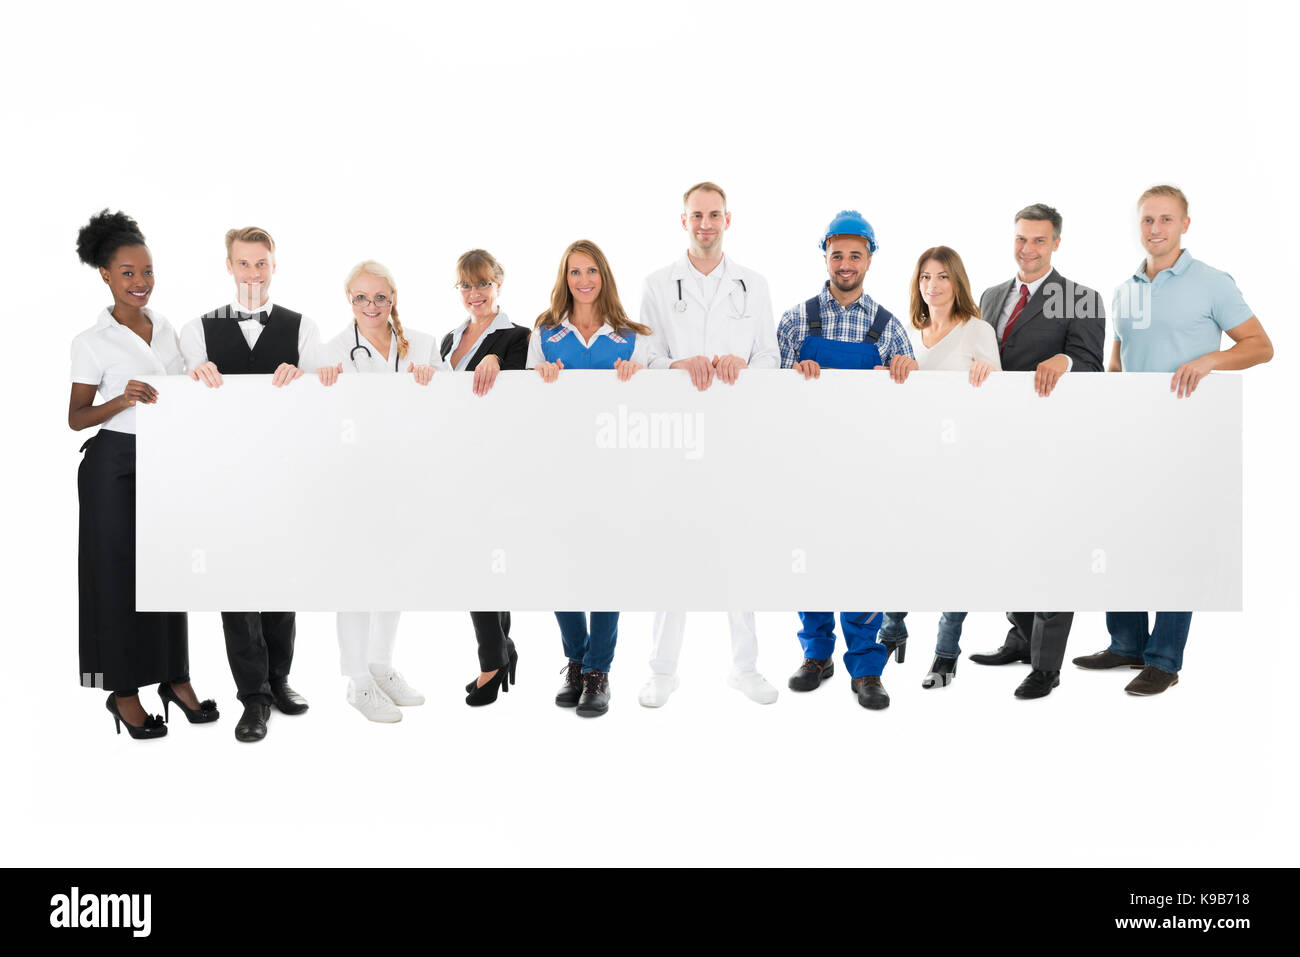 Group portrait of people with various occupations holding blank billboard against white background - Stock Image